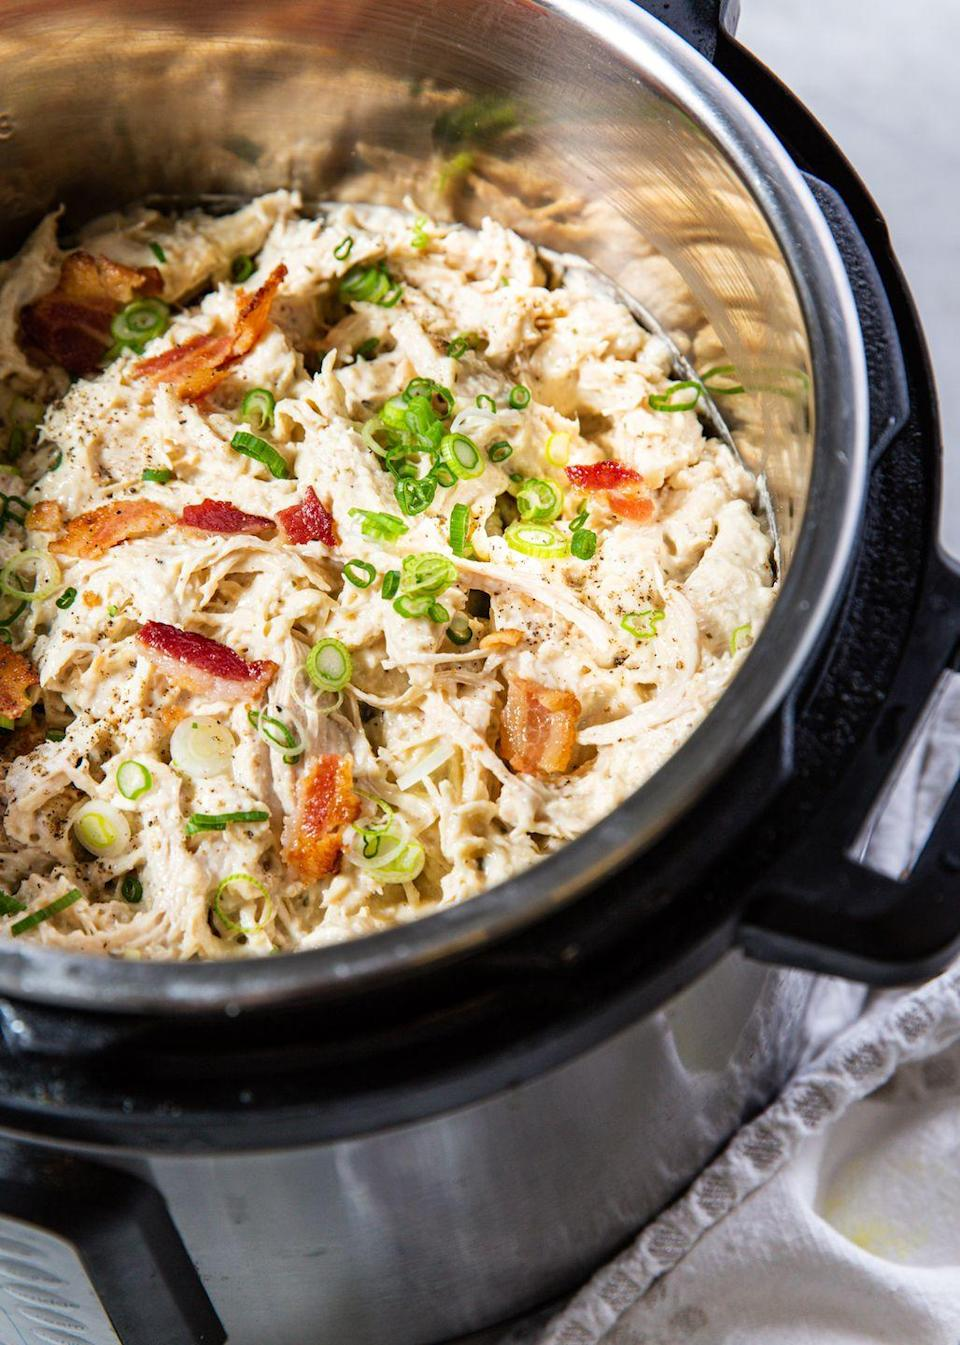 """<p>This is both incredibly versatile and totally delicious.</p><p>Get the recipe from <a href=""""https://www.delish.com/cooking/recipe-ideas/a30472379/instant-pot-crack-chicken-recipe/"""" rel=""""nofollow noopener"""" target=""""_blank"""" data-ylk=""""slk:Delish."""" class=""""link rapid-noclick-resp"""">Delish.</a></p>"""